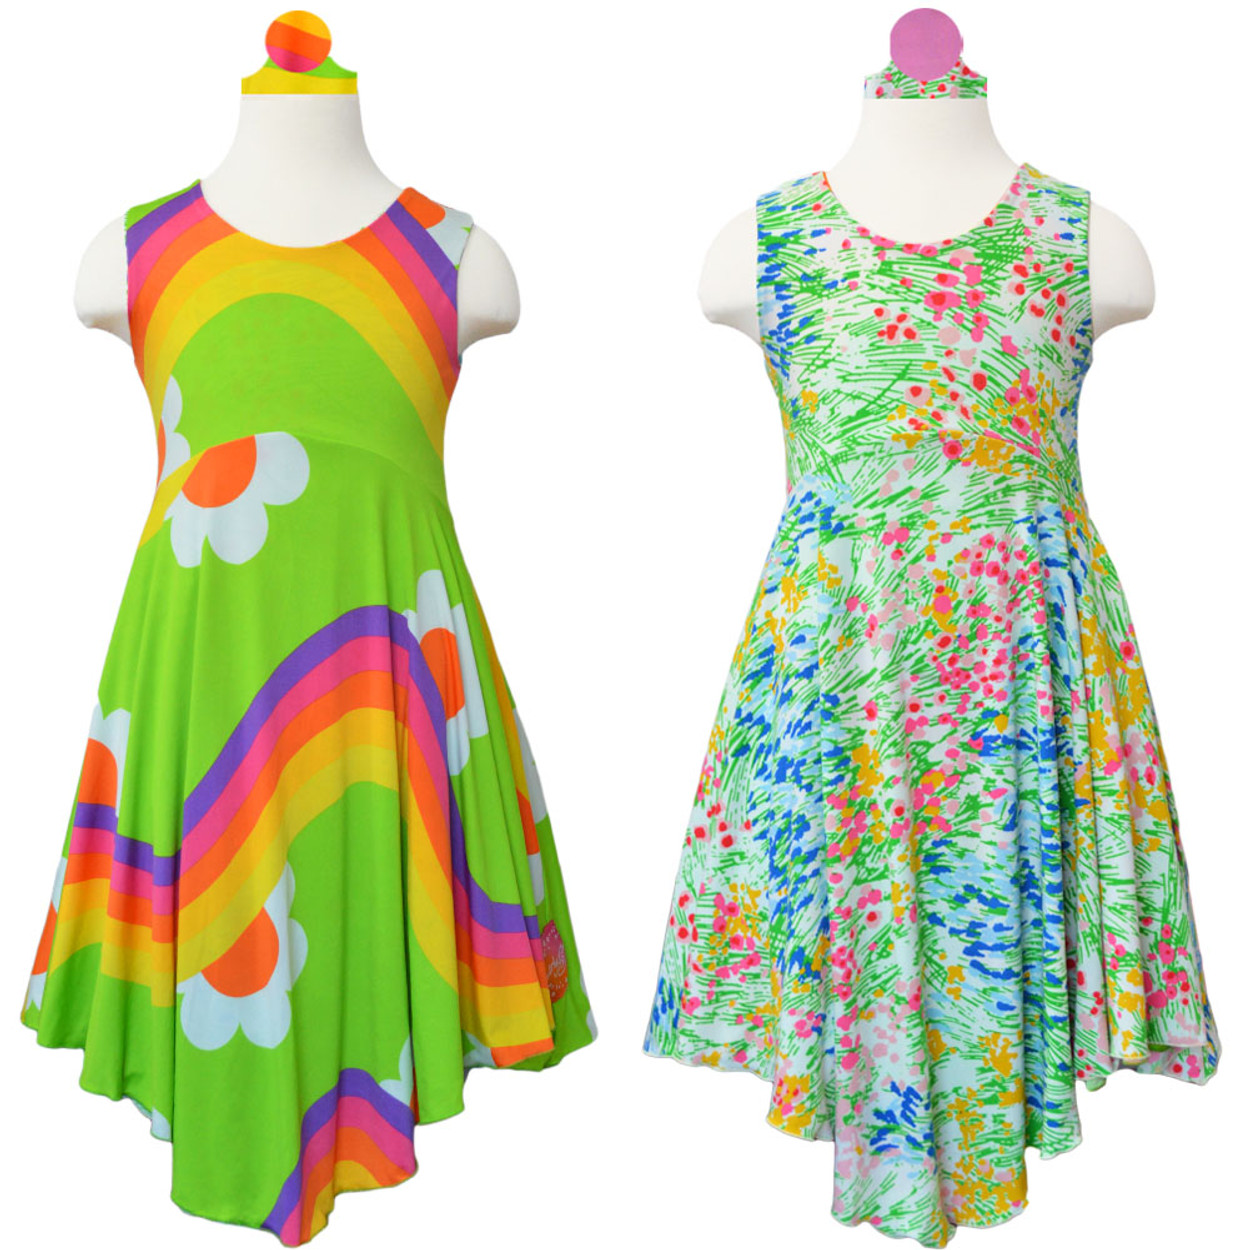 33f156258 Twirly Girl Girls Full Circle Skirt Dress Reversible Sleeveless ...